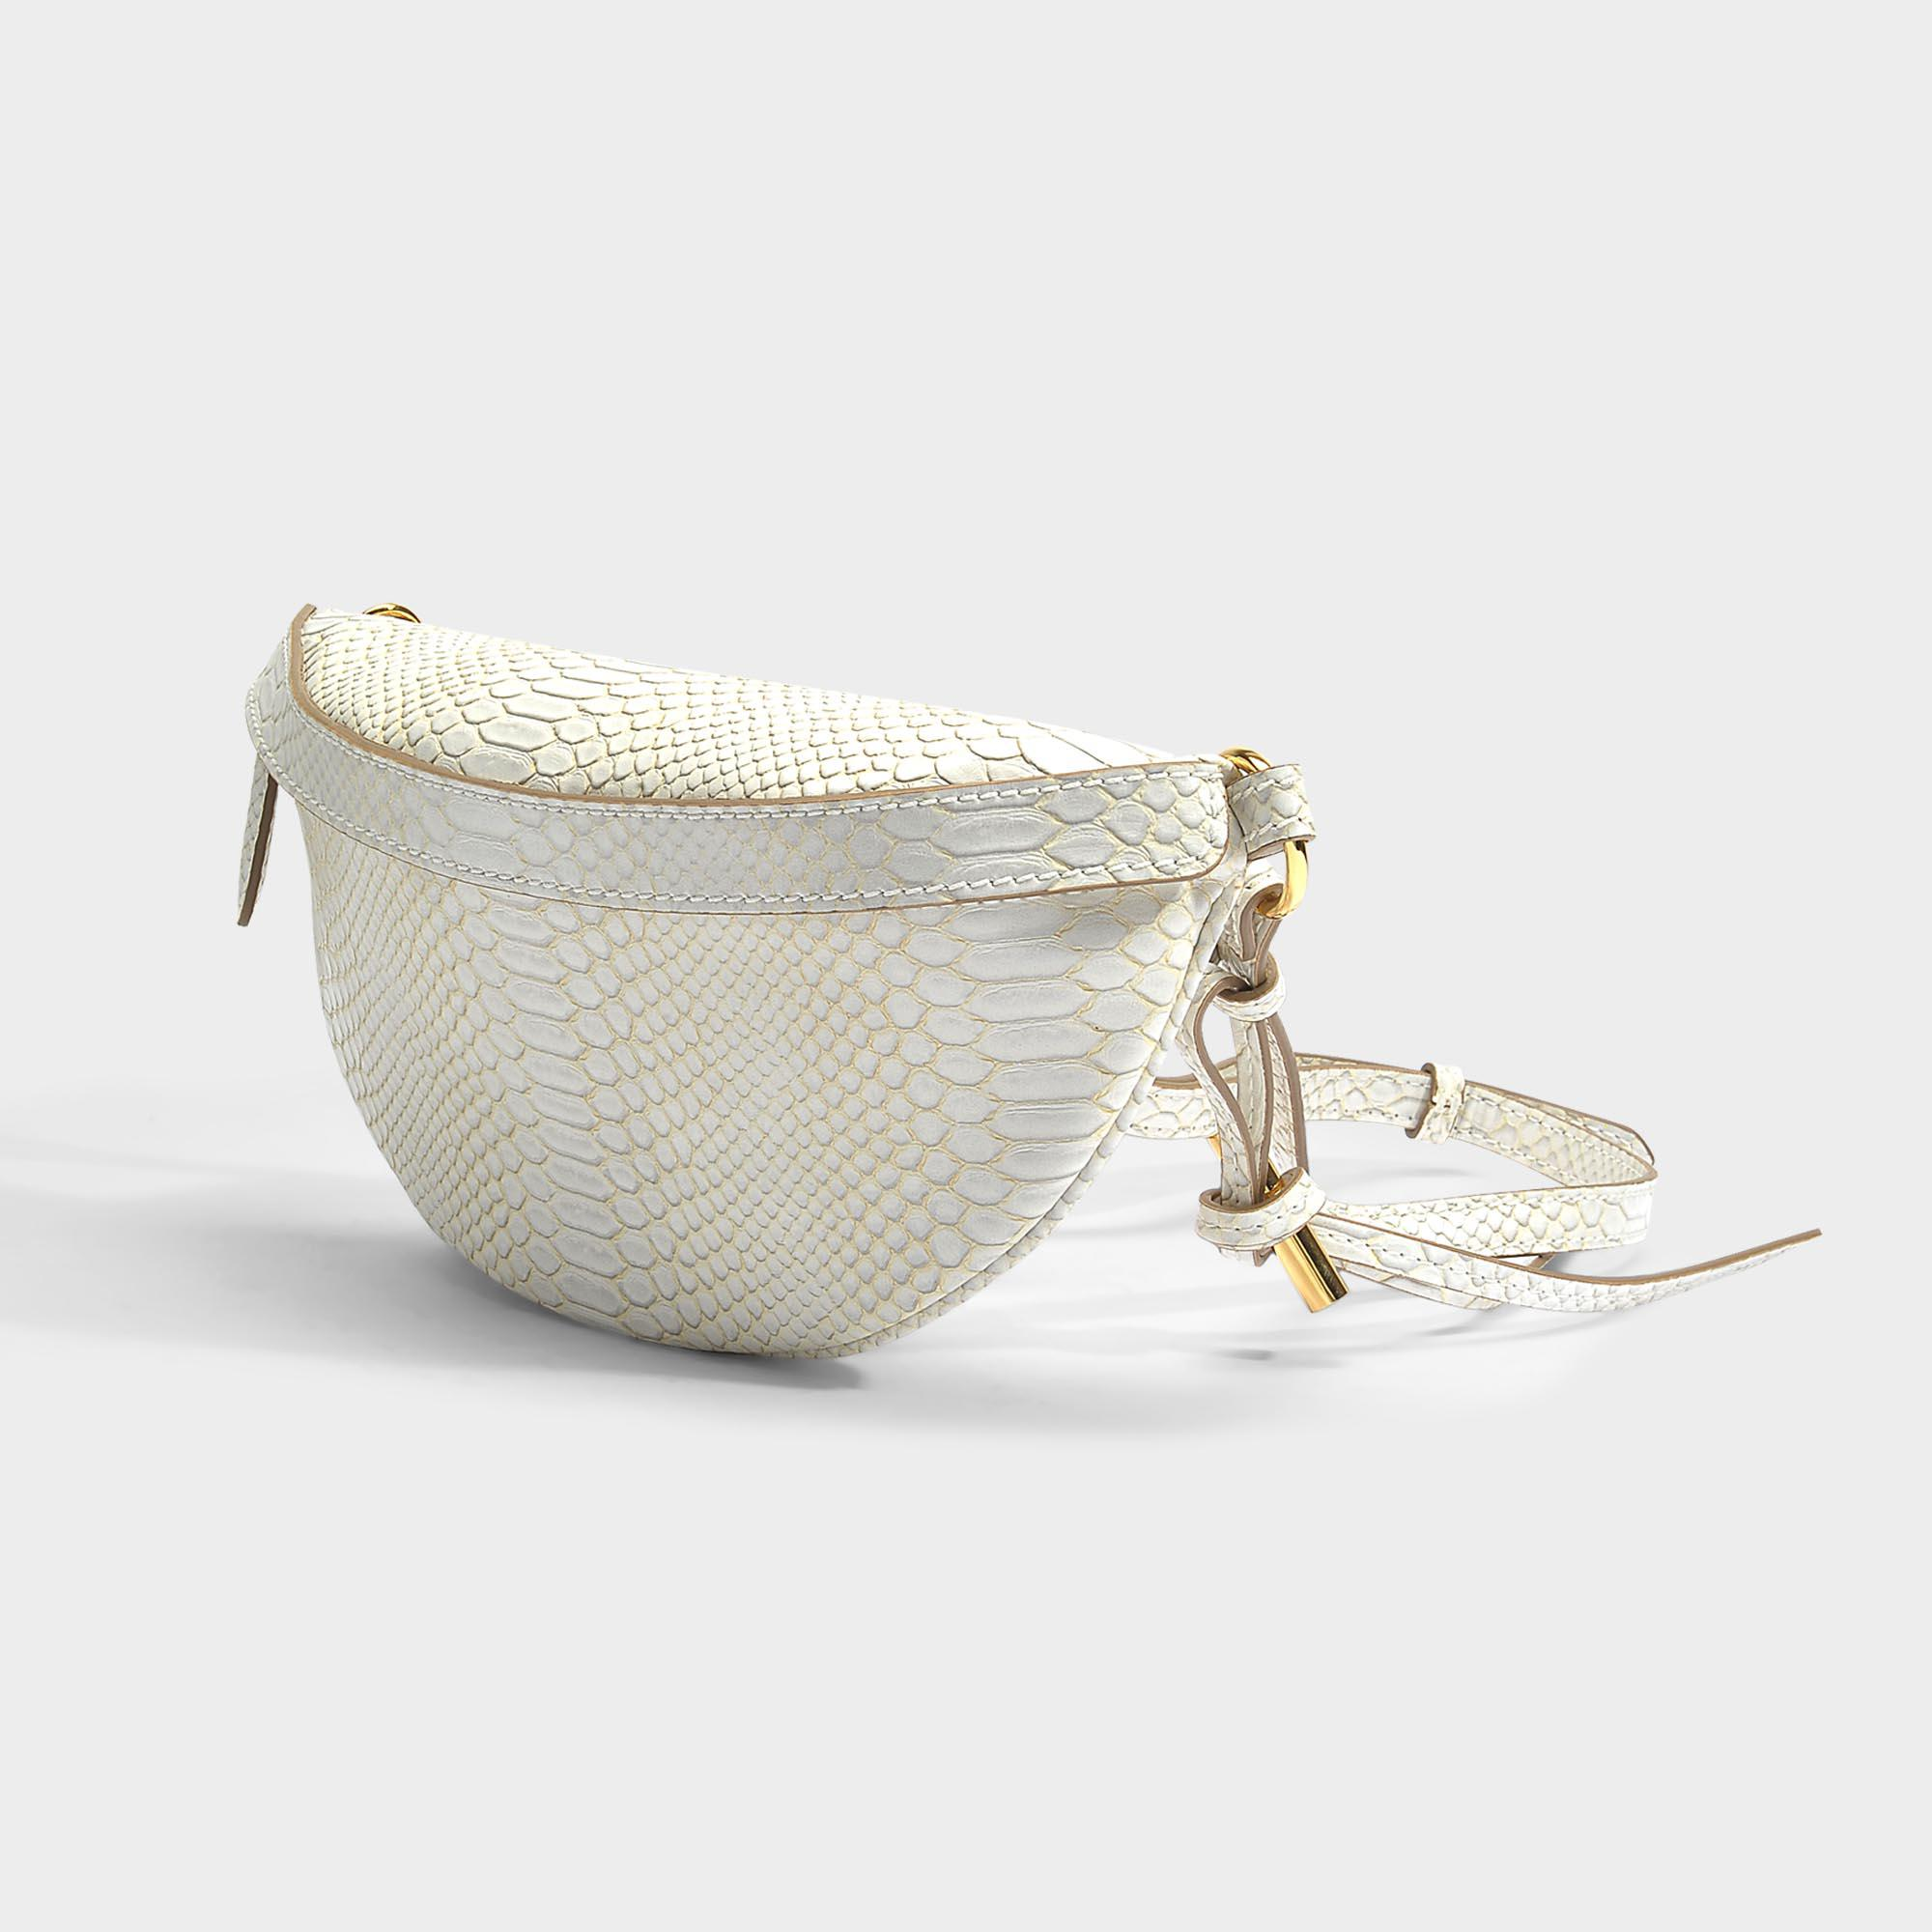 Alter Snake Small Bum Bag in Ivory Eco Leather Stella McCartney XErl7xGcev